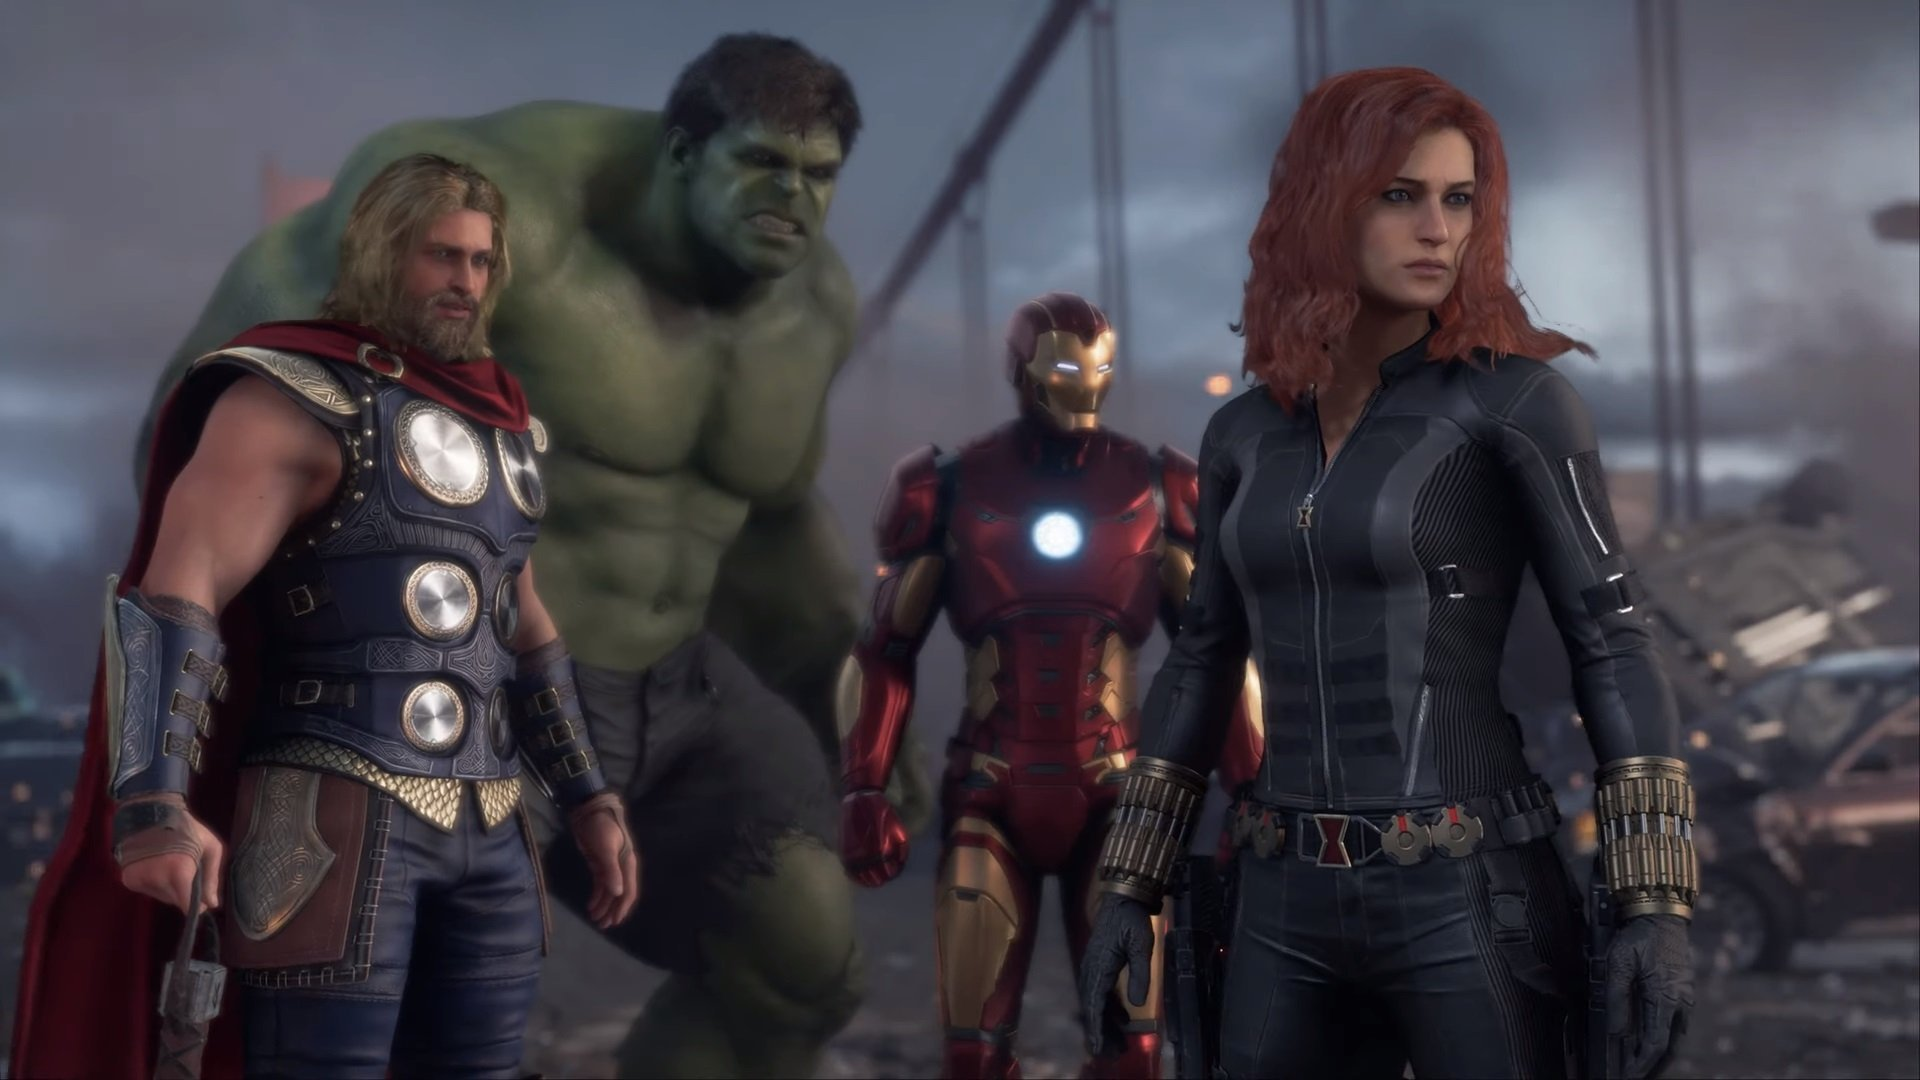 The Marvel's Avengers open beta starts August 21, preloading is live now